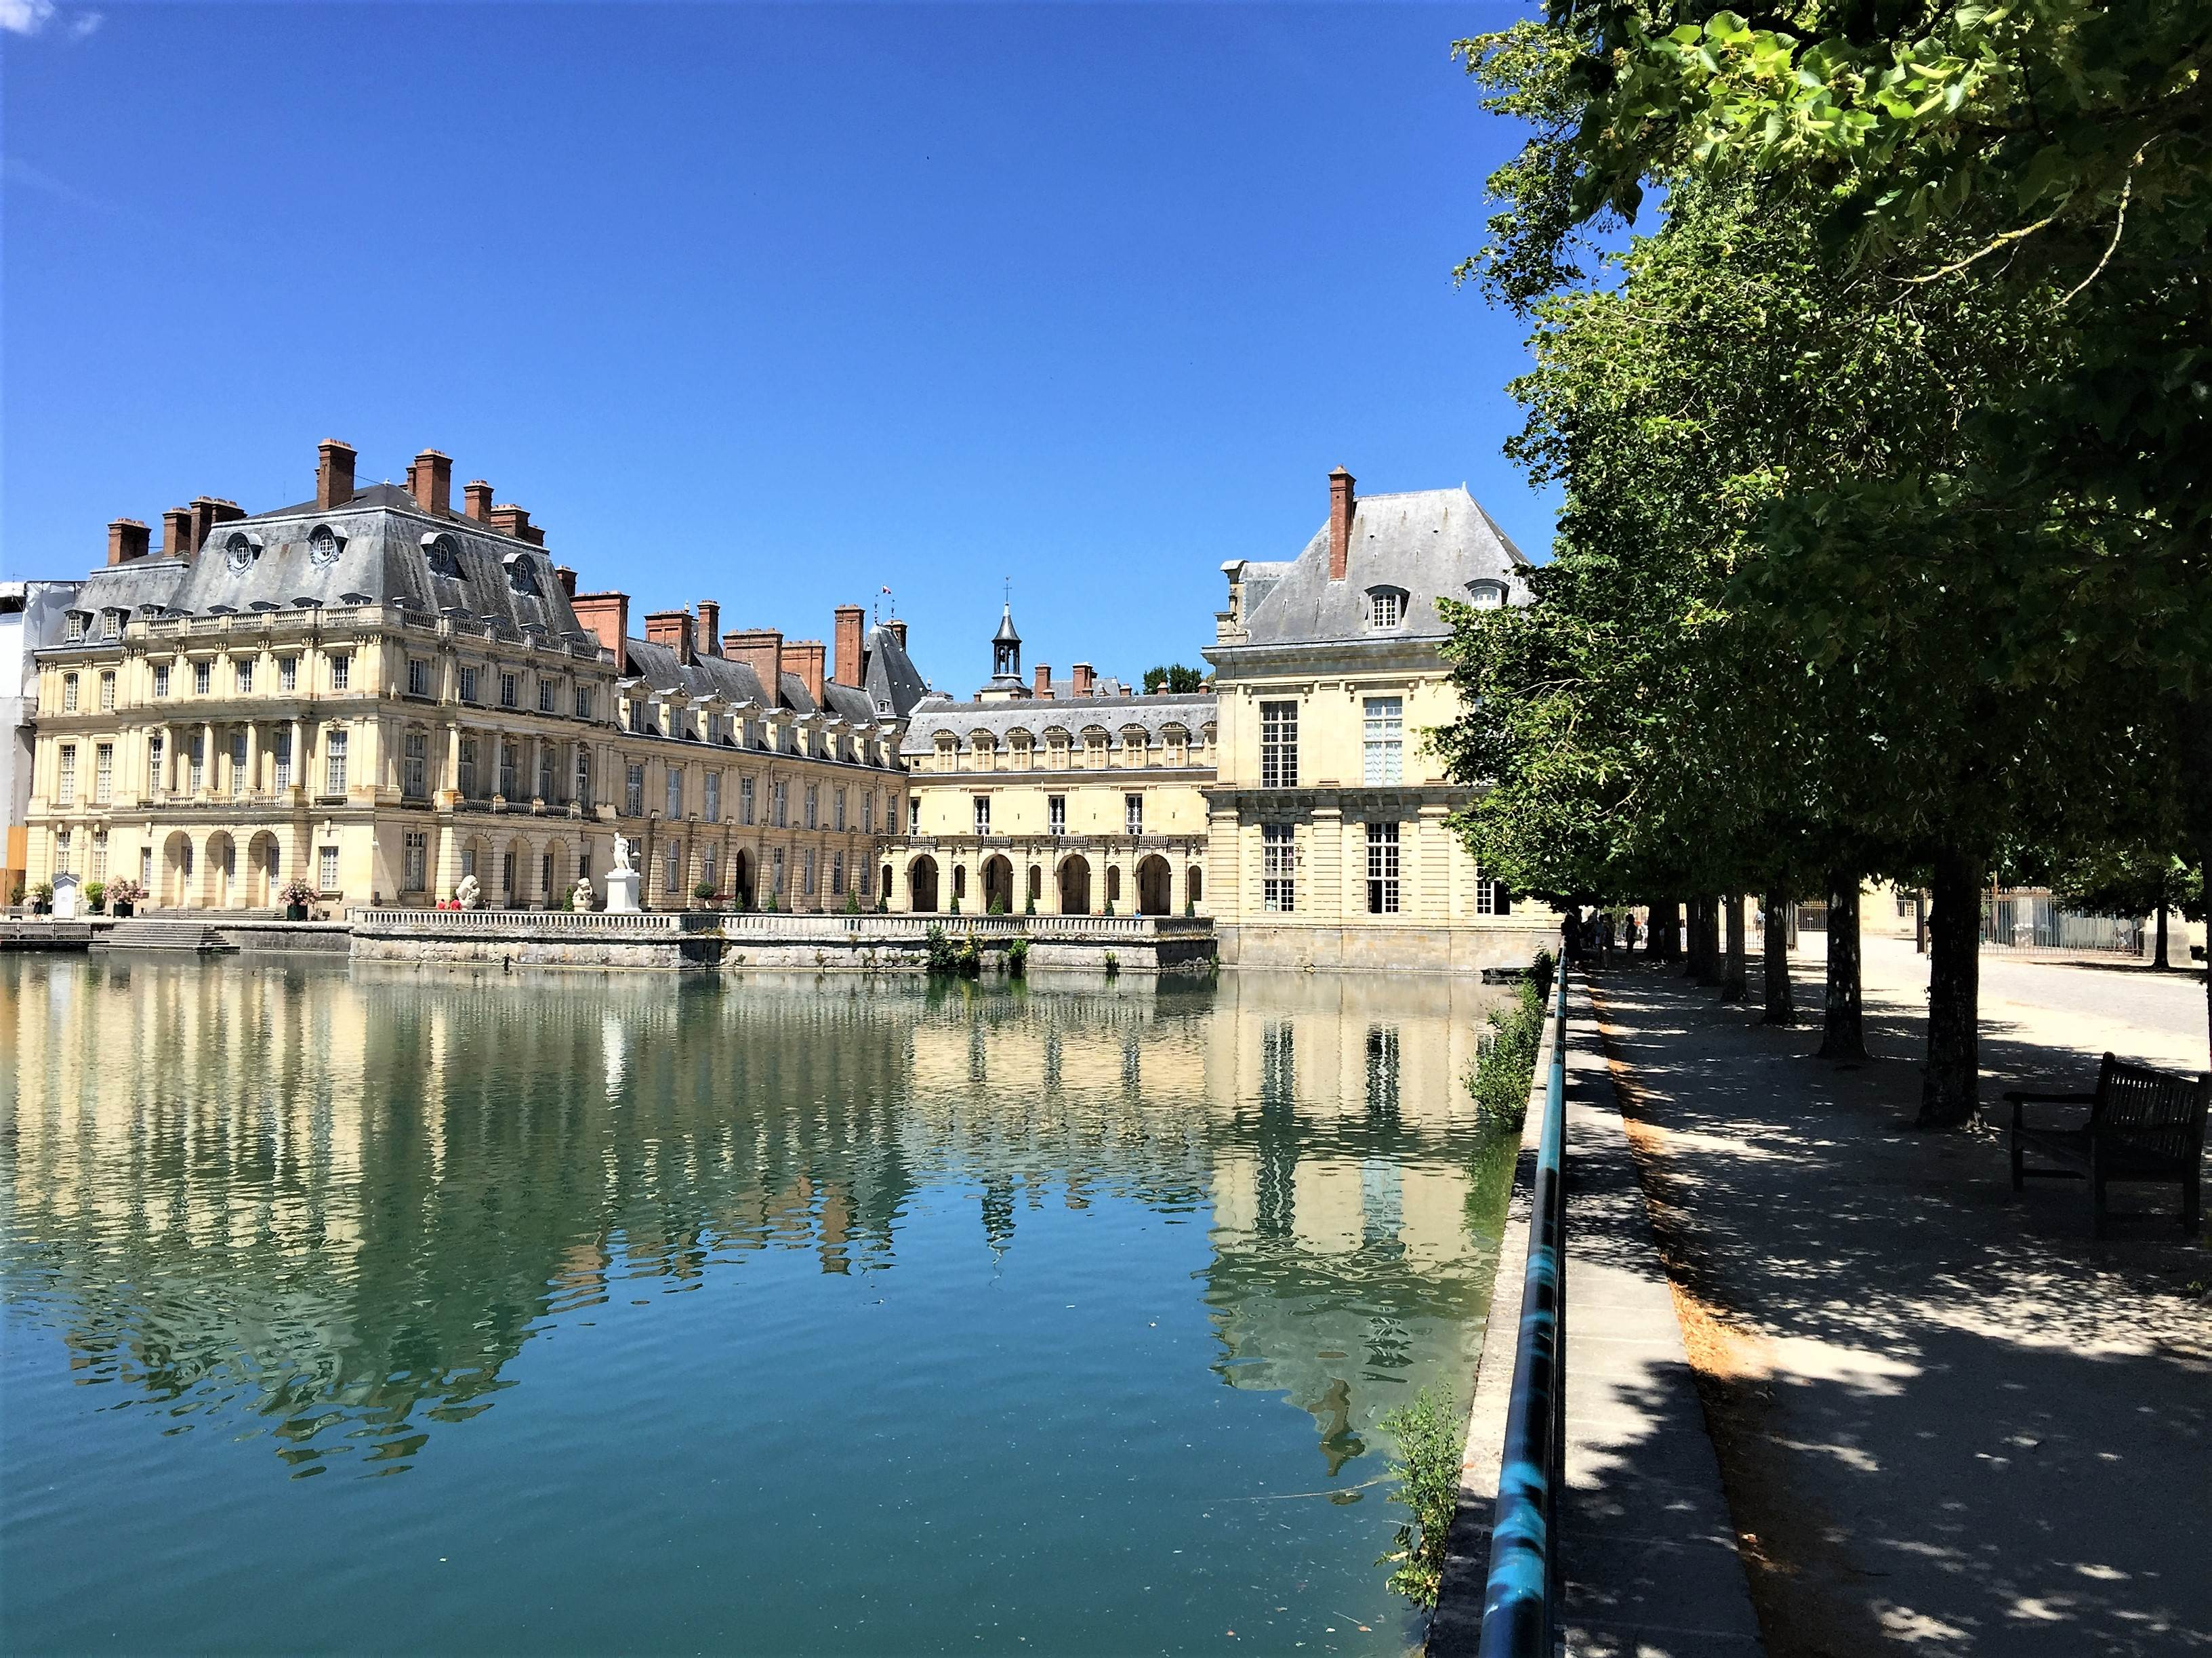 Chateau Fontainebleau is a great day trip from Paris. Discover 10 reasons that you should visit this beautiful chateau. Explore the beautiful palace and the grounds on a quick, easy trip from Paris. #paris #chateaufountainbleau #daytripfromparis